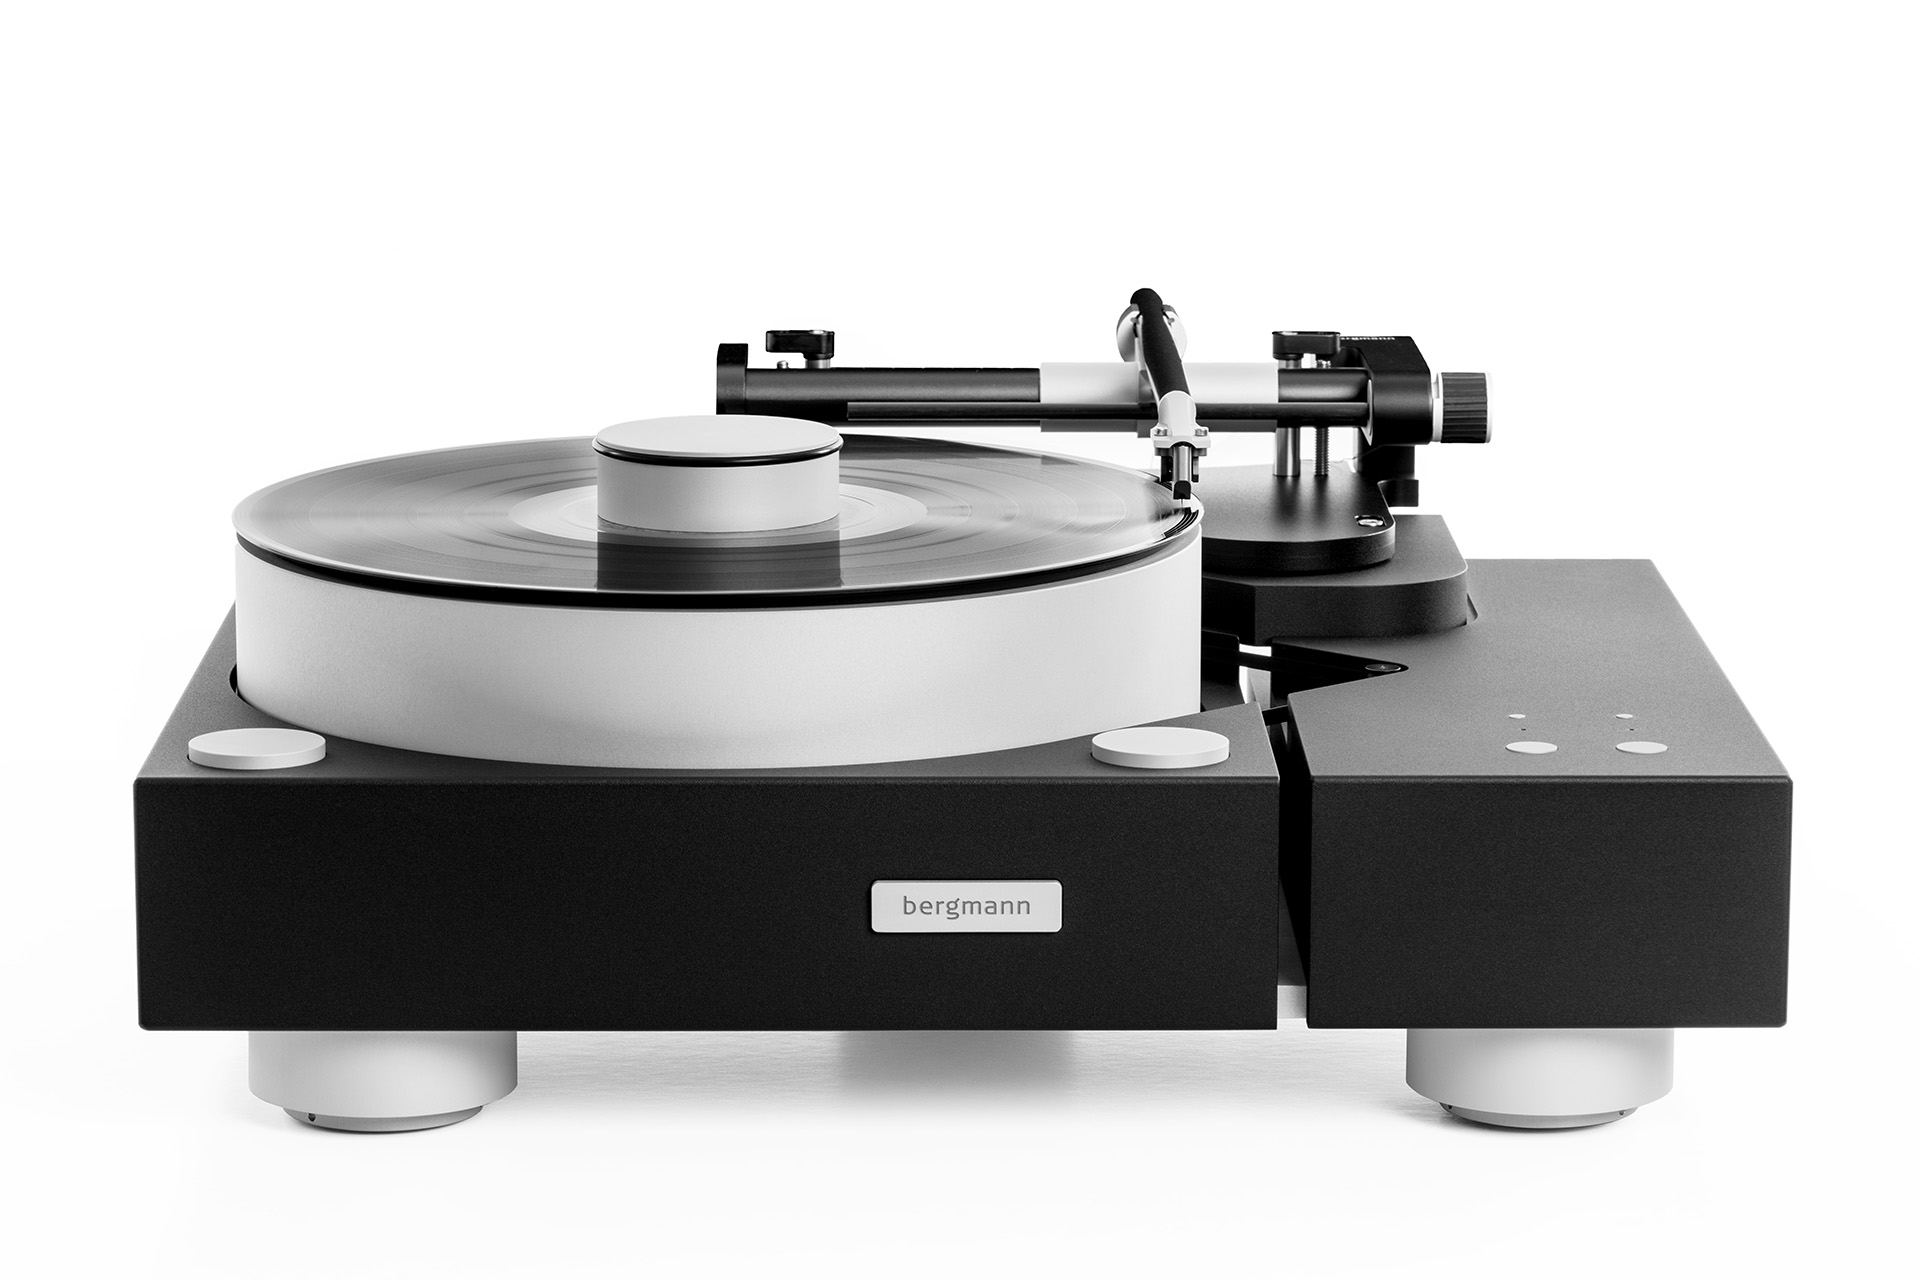 Bergmann Audios Galder turntables in black edition with tonearm - The perspective is angled from the top